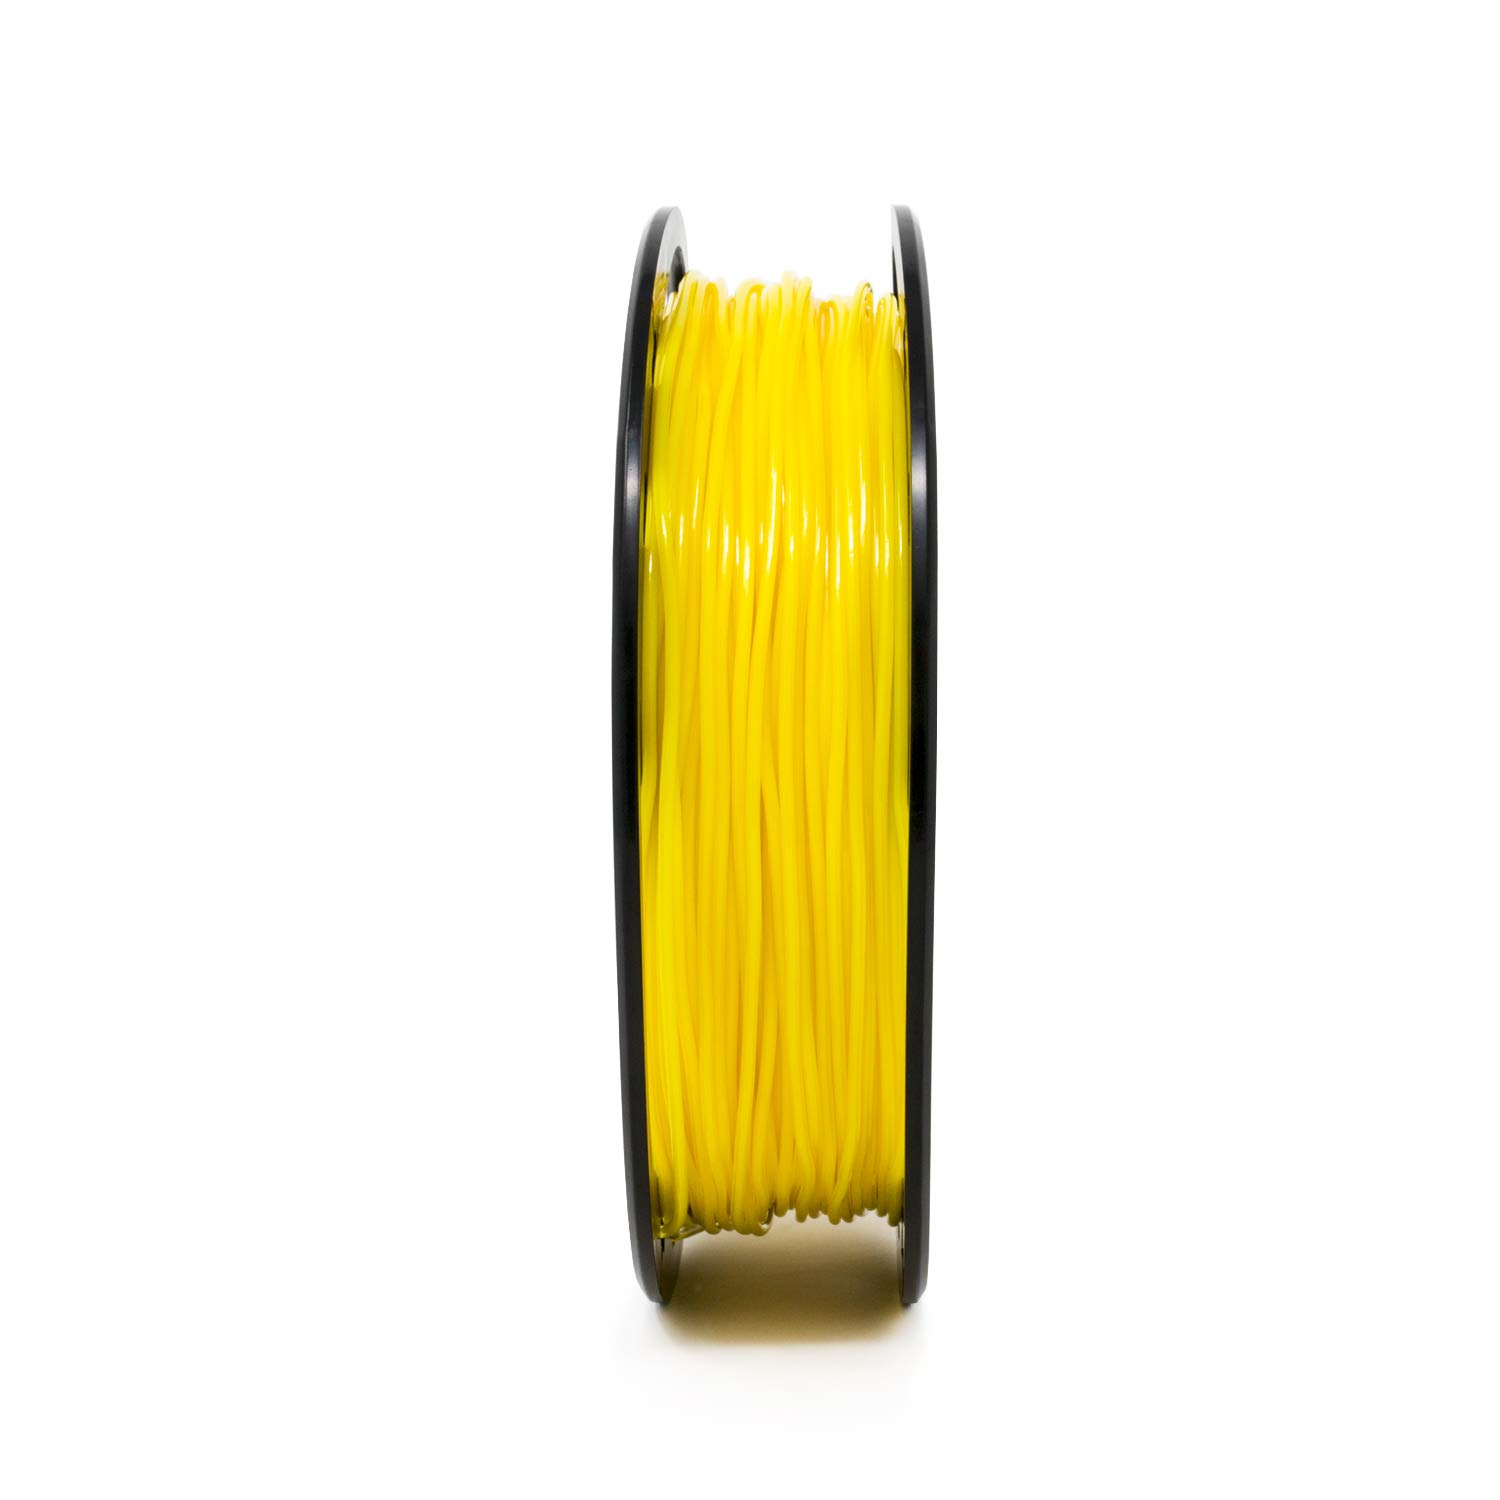 2.85mm Gizmo Dorks Flexible TPU Filament for 3D Printers 3mm 200g Red